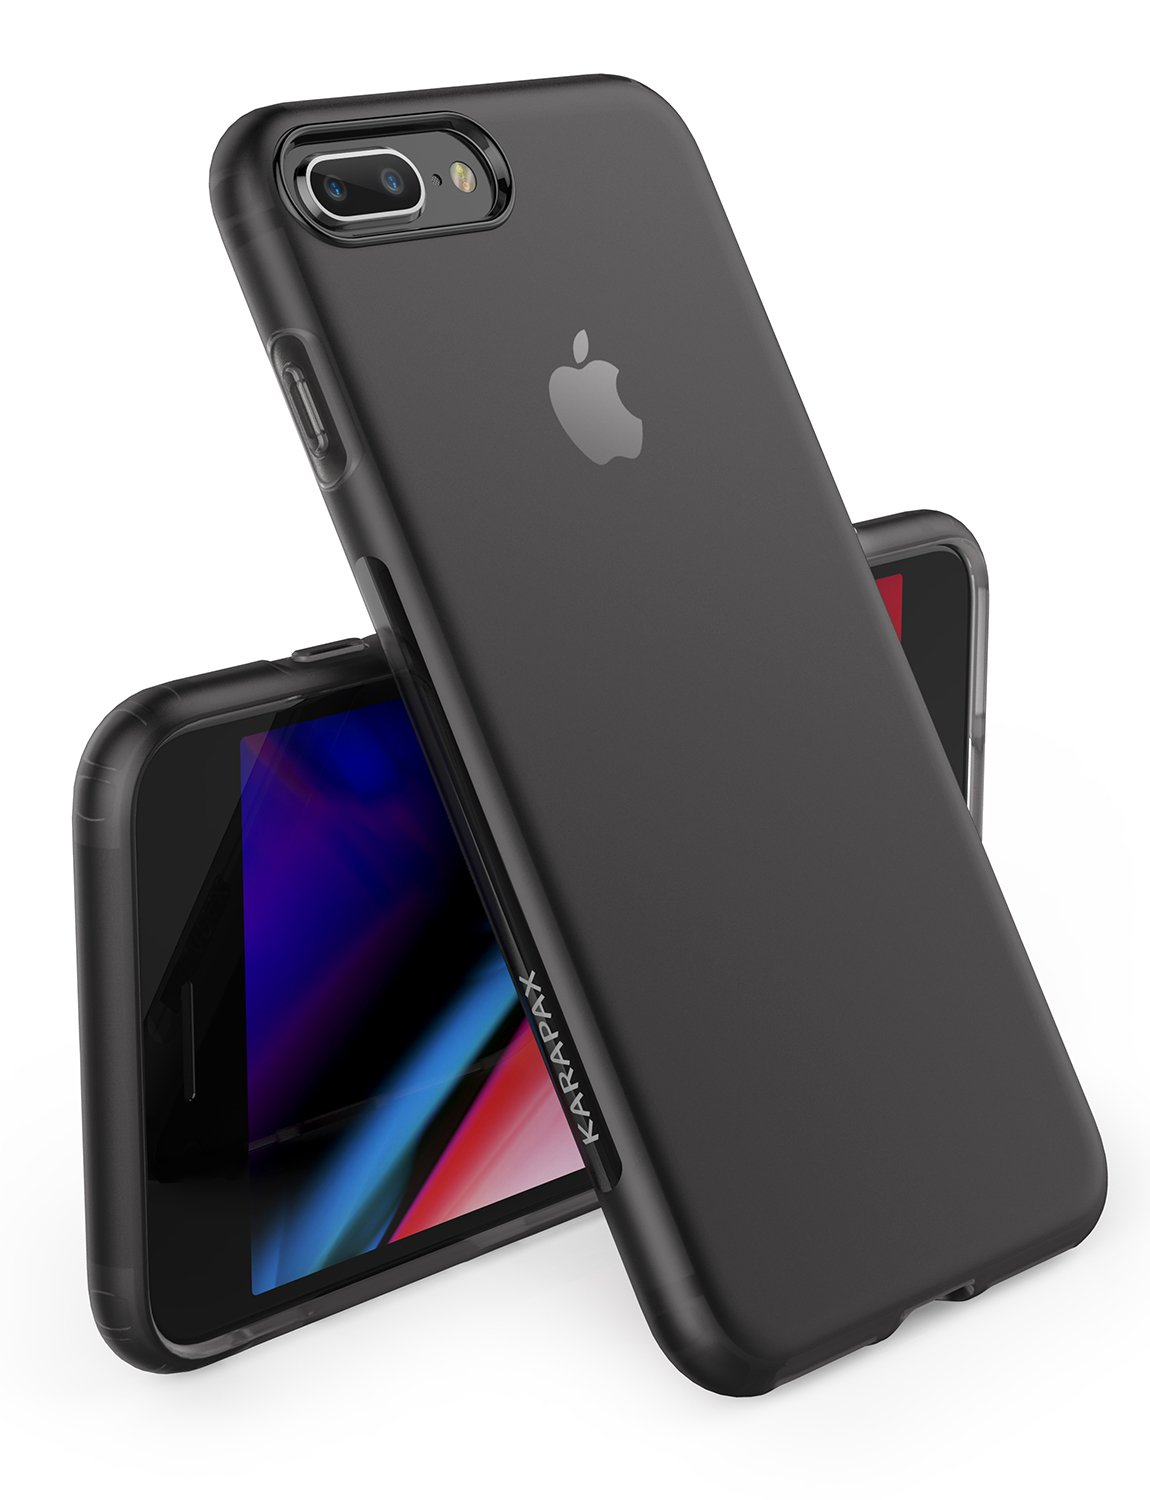 iphone 8 plus case iphone 7 plus case anker karapax touch case matte finish f 696227359979 ebay. Black Bedroom Furniture Sets. Home Design Ideas